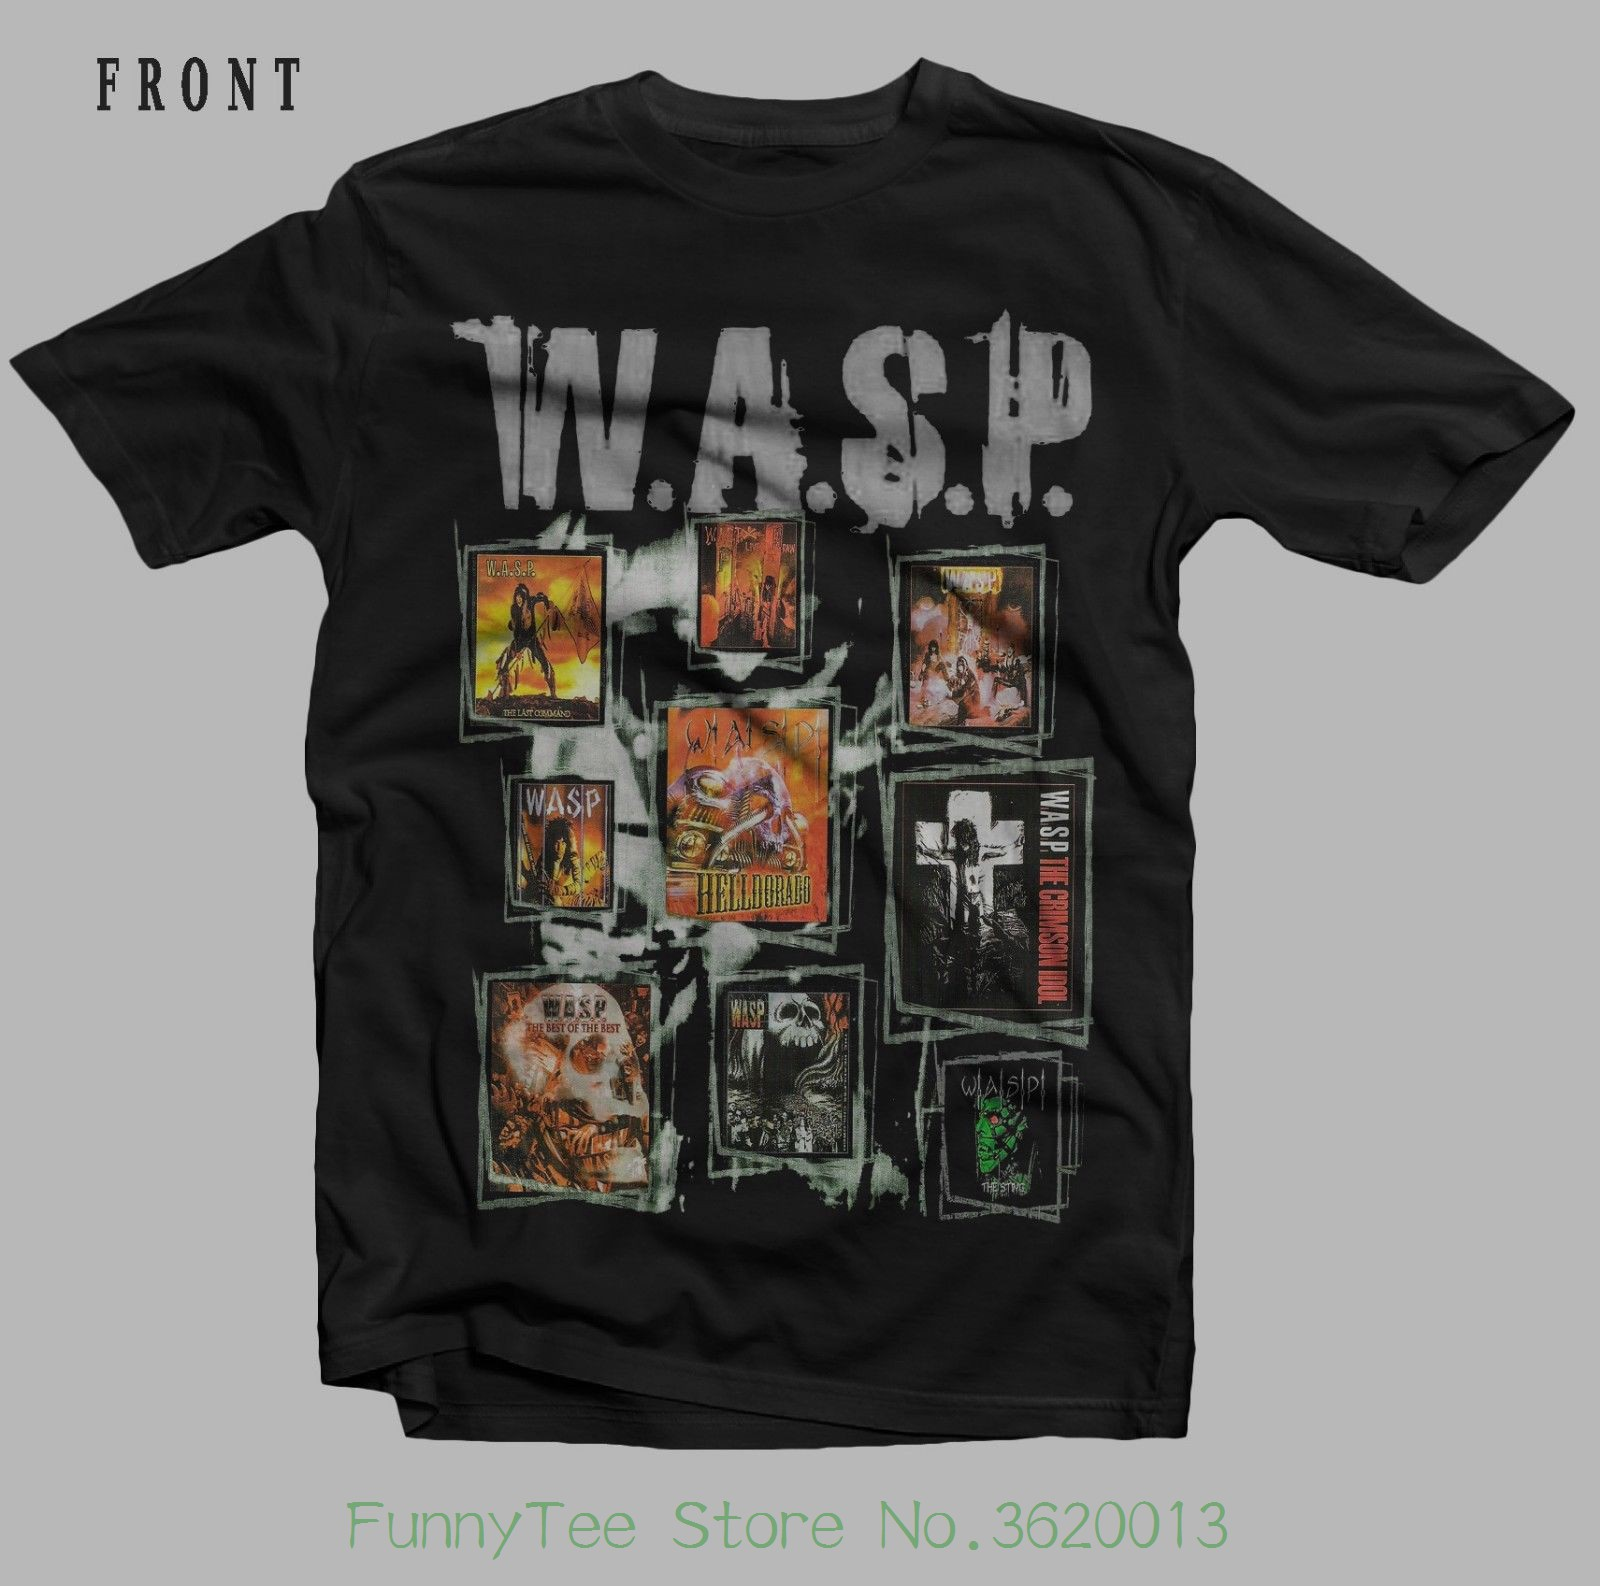 W.a.s.p. - heavy Metal Band - ratt - quie < Wbr / > T Riot , T _ Shirt - sizes : < Wbr / > S To 7xl